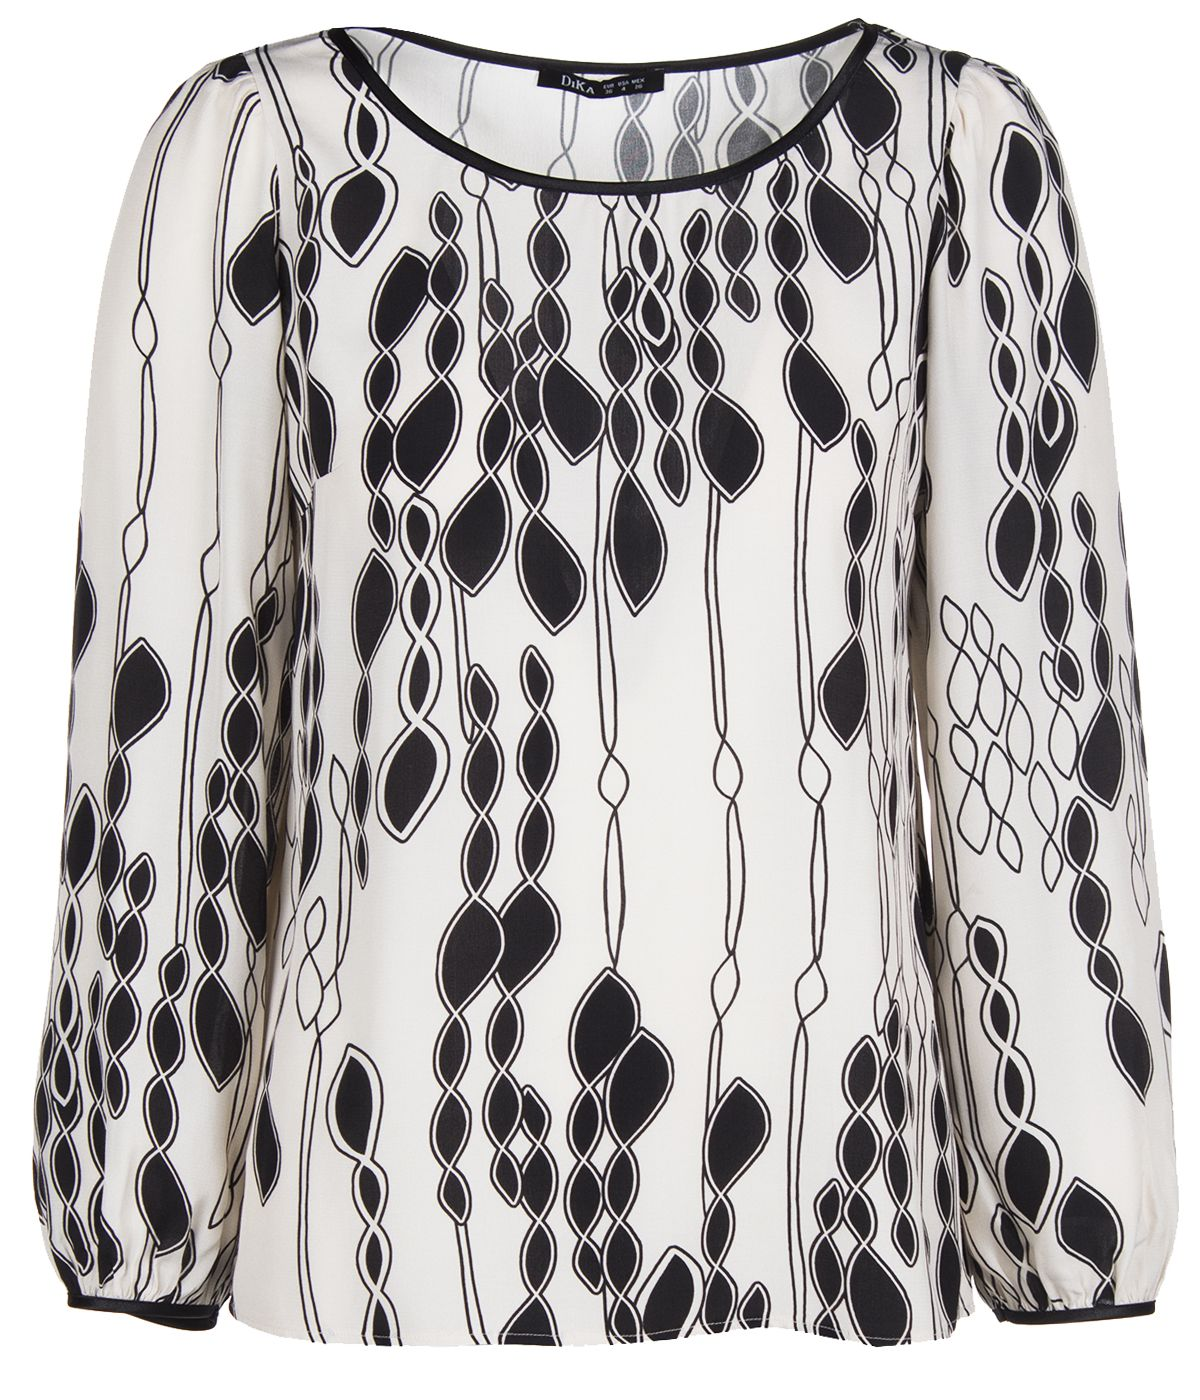 Long-sleeved blouse, round neckline 0